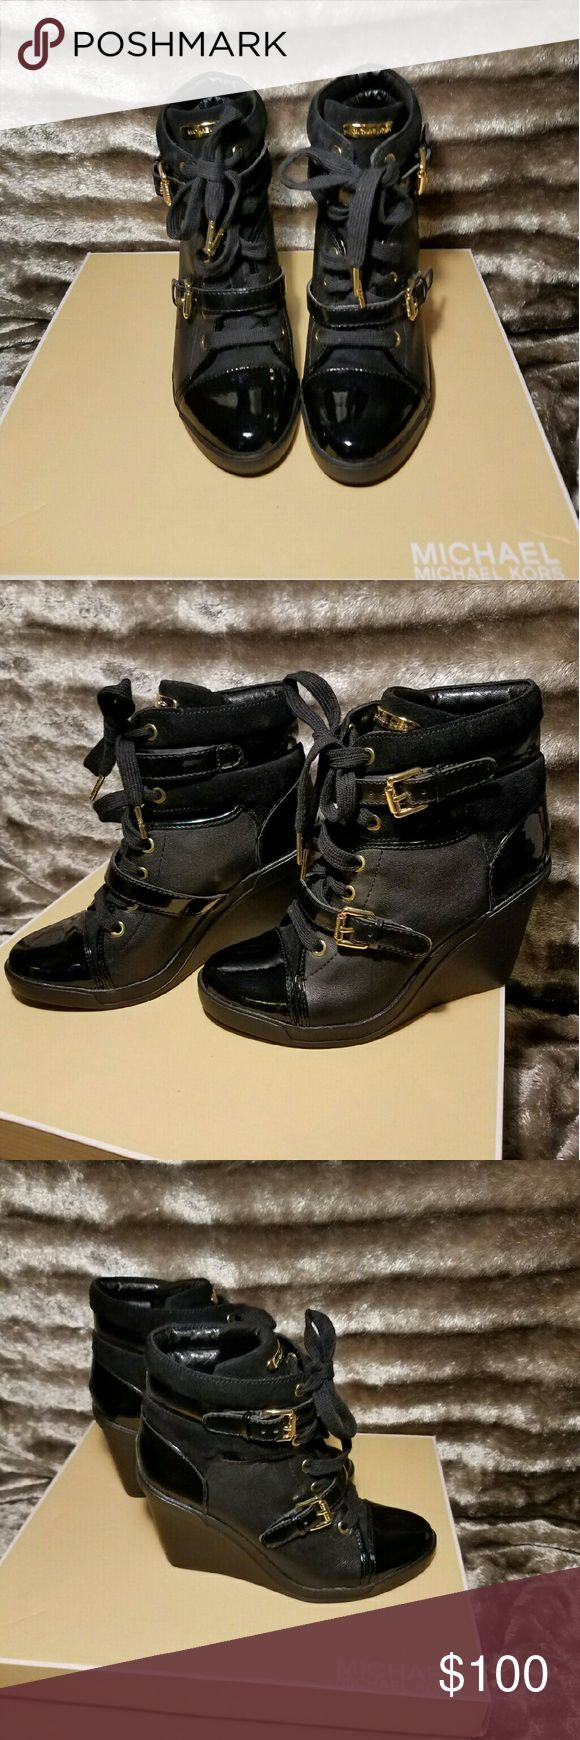 Michael Kors Skid Sneaker Wedge (size 7) Black patent leather and suede. Never worn outside, only tried on once in store. Michael Kors Shoes Sneakers